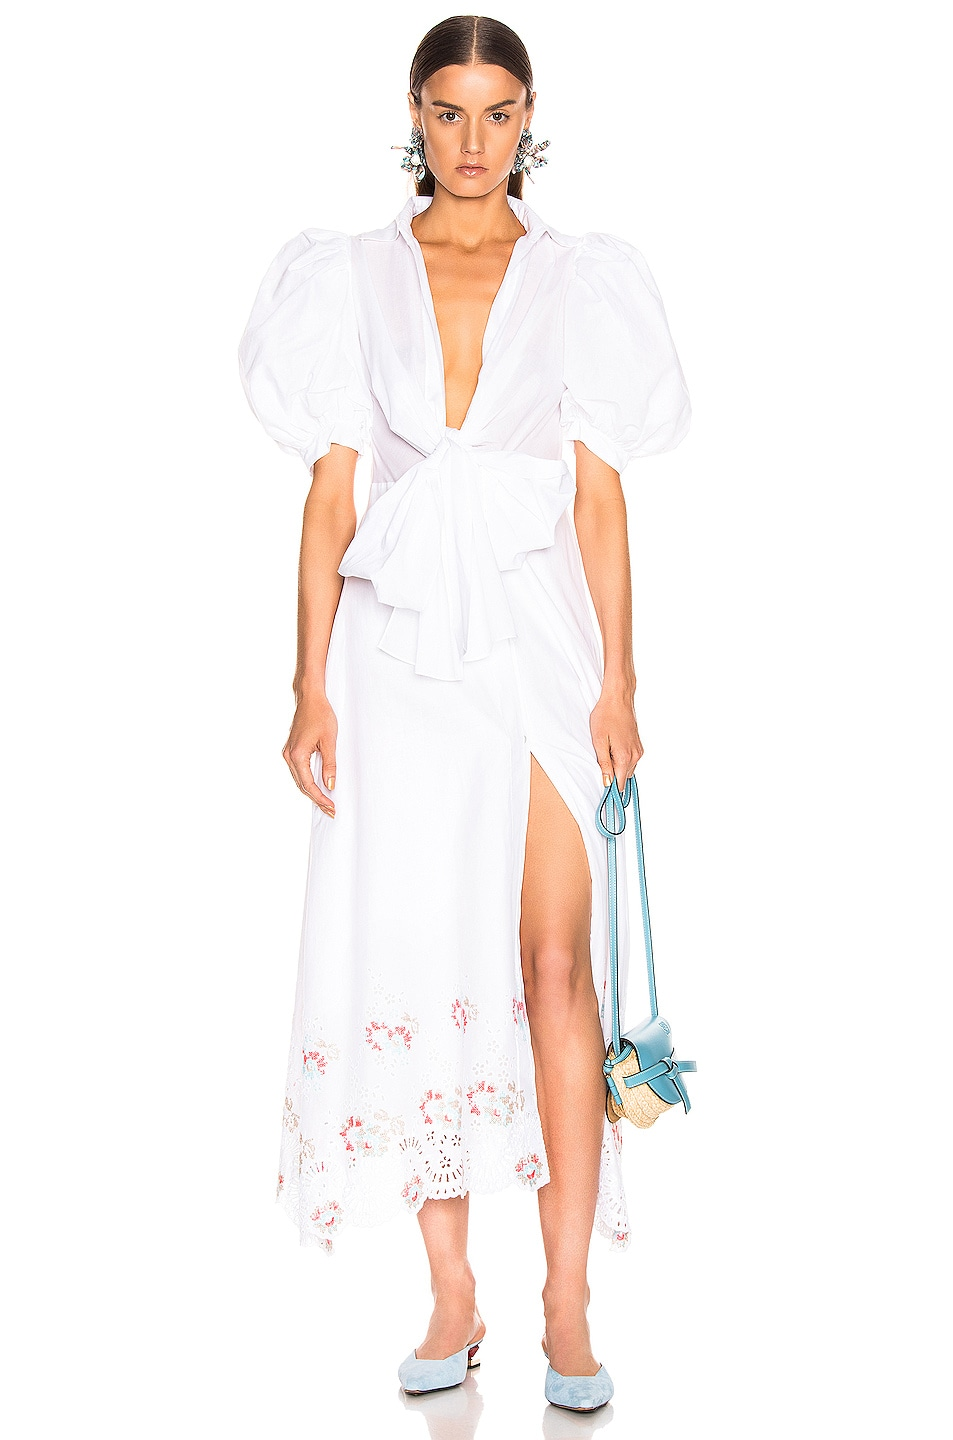 Image 1 of SILVIA TCHERASSI for FWRD Embroidered Assunta Dress in Floral White